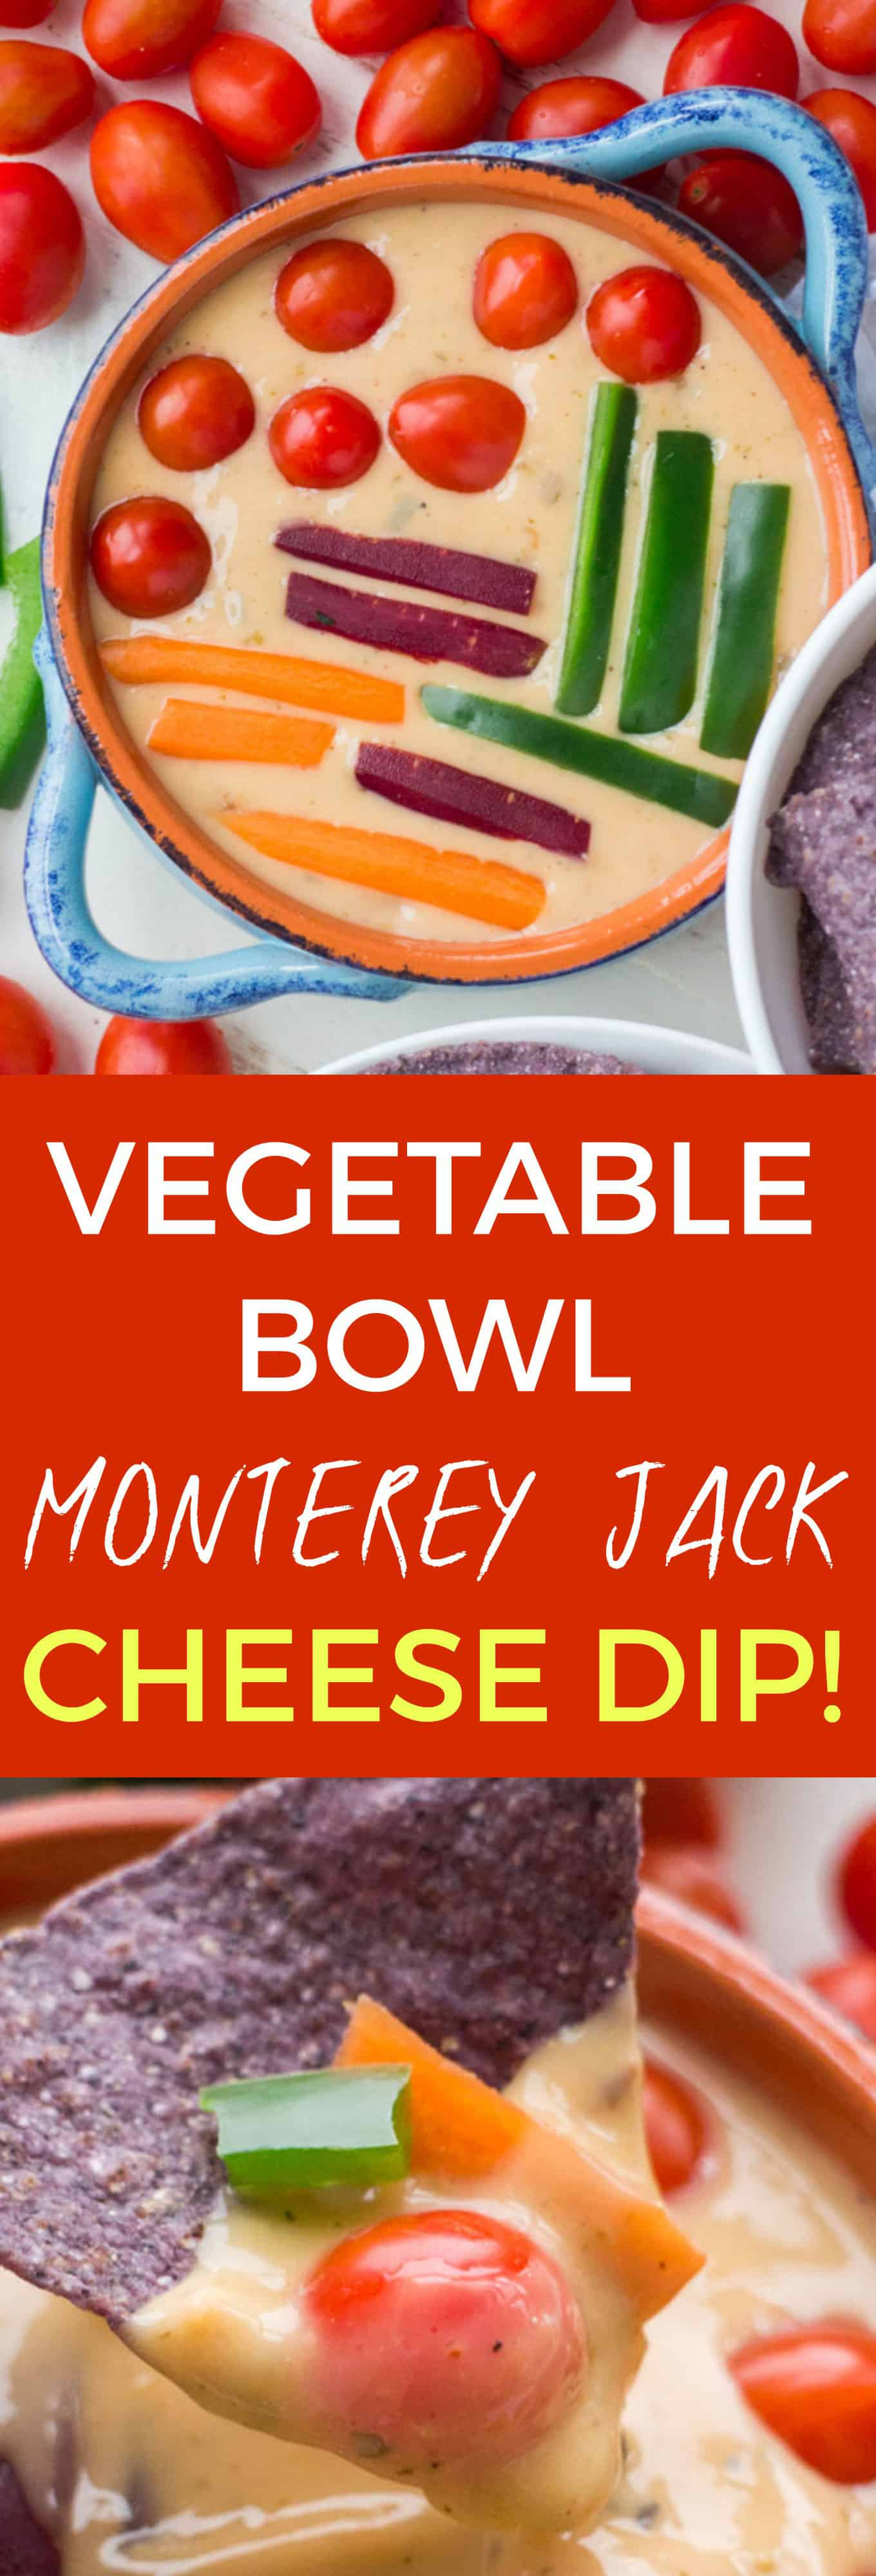 PRETTIEST Cheese Dip ever! MEXICAN Vegetable Bowl MONTEREY JACK Cheese Dip! This easy dip recipe is made with grated Monterey Jack cheese and Mexican spices! Cover the top with chopped up vegetables to make the most beautiful homemade dip!